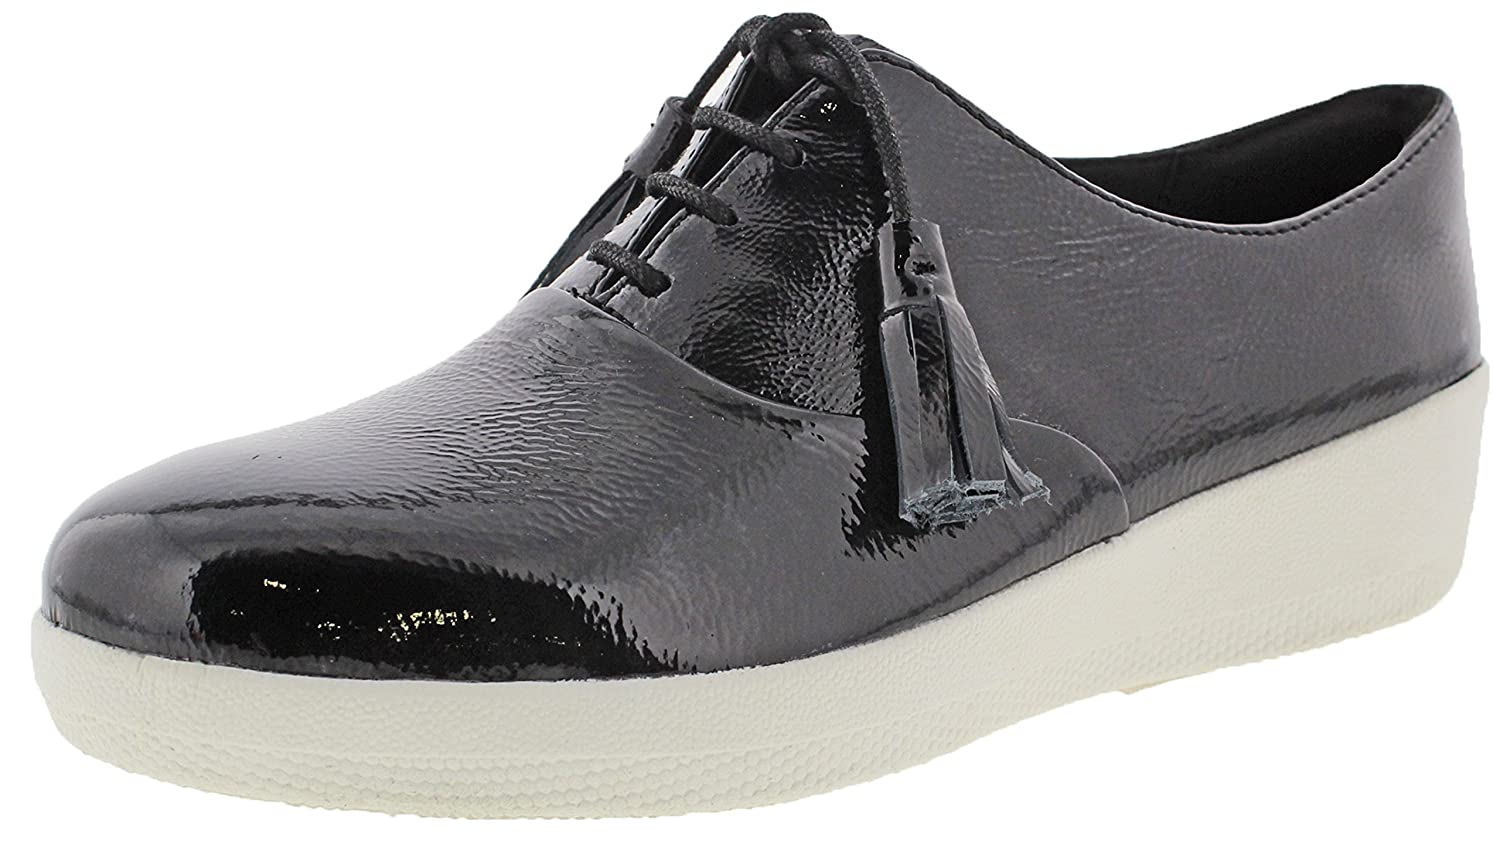 FitFlop All Classic Tassel Superoxford - All FitFlop schwarz Patent Leder - 326525